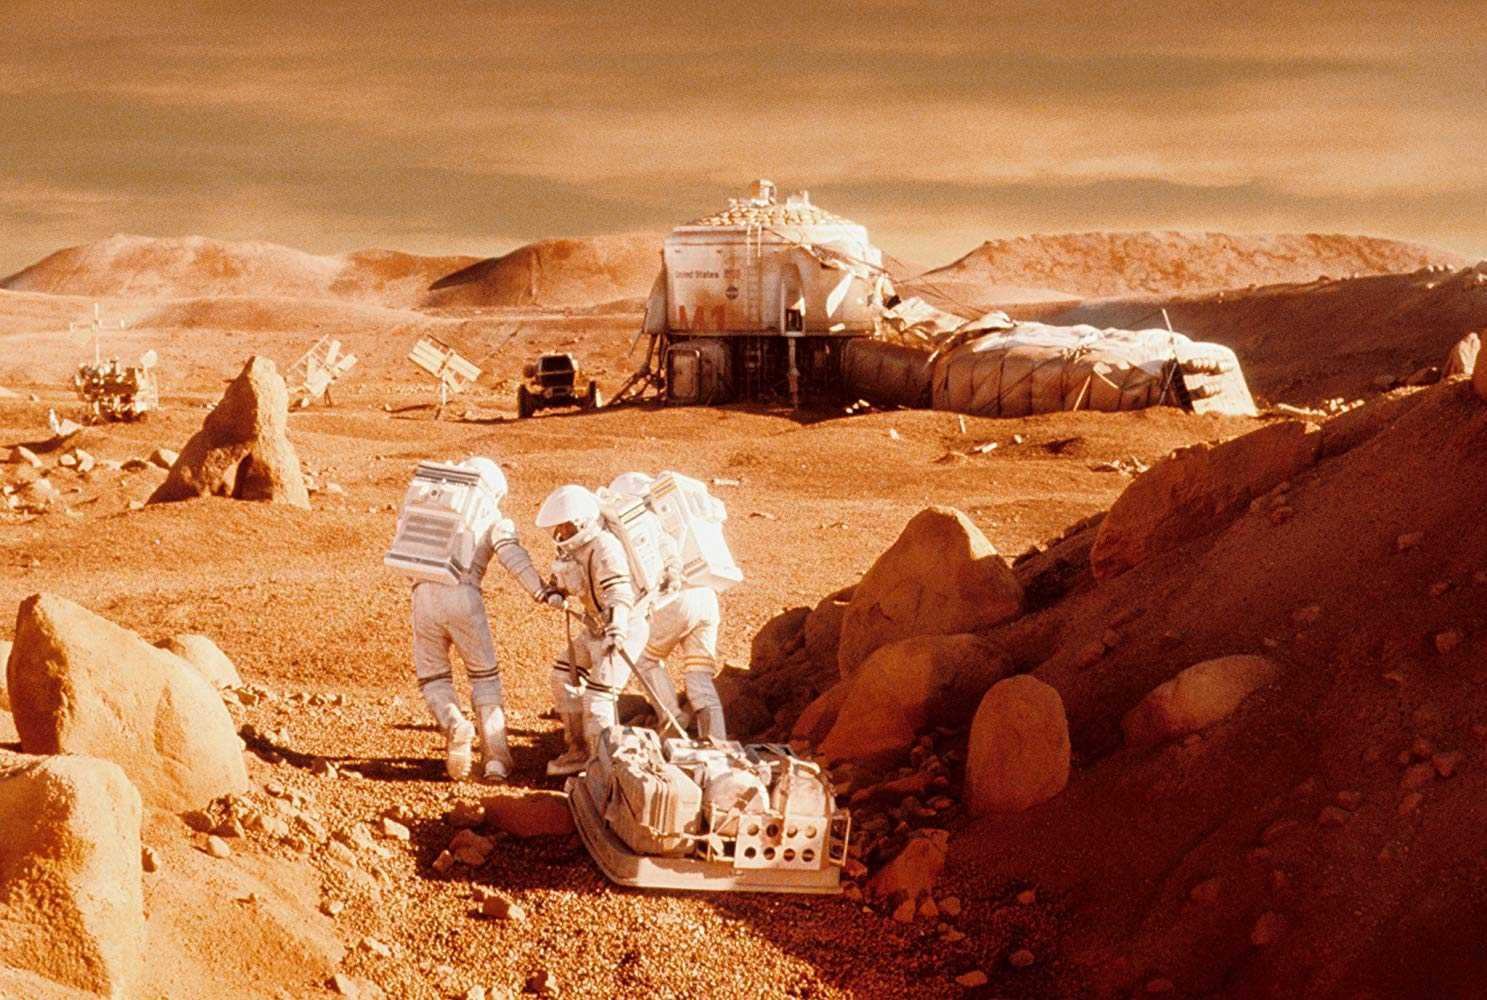 The astronauts construct a shelter in Mission to Mars (2000)